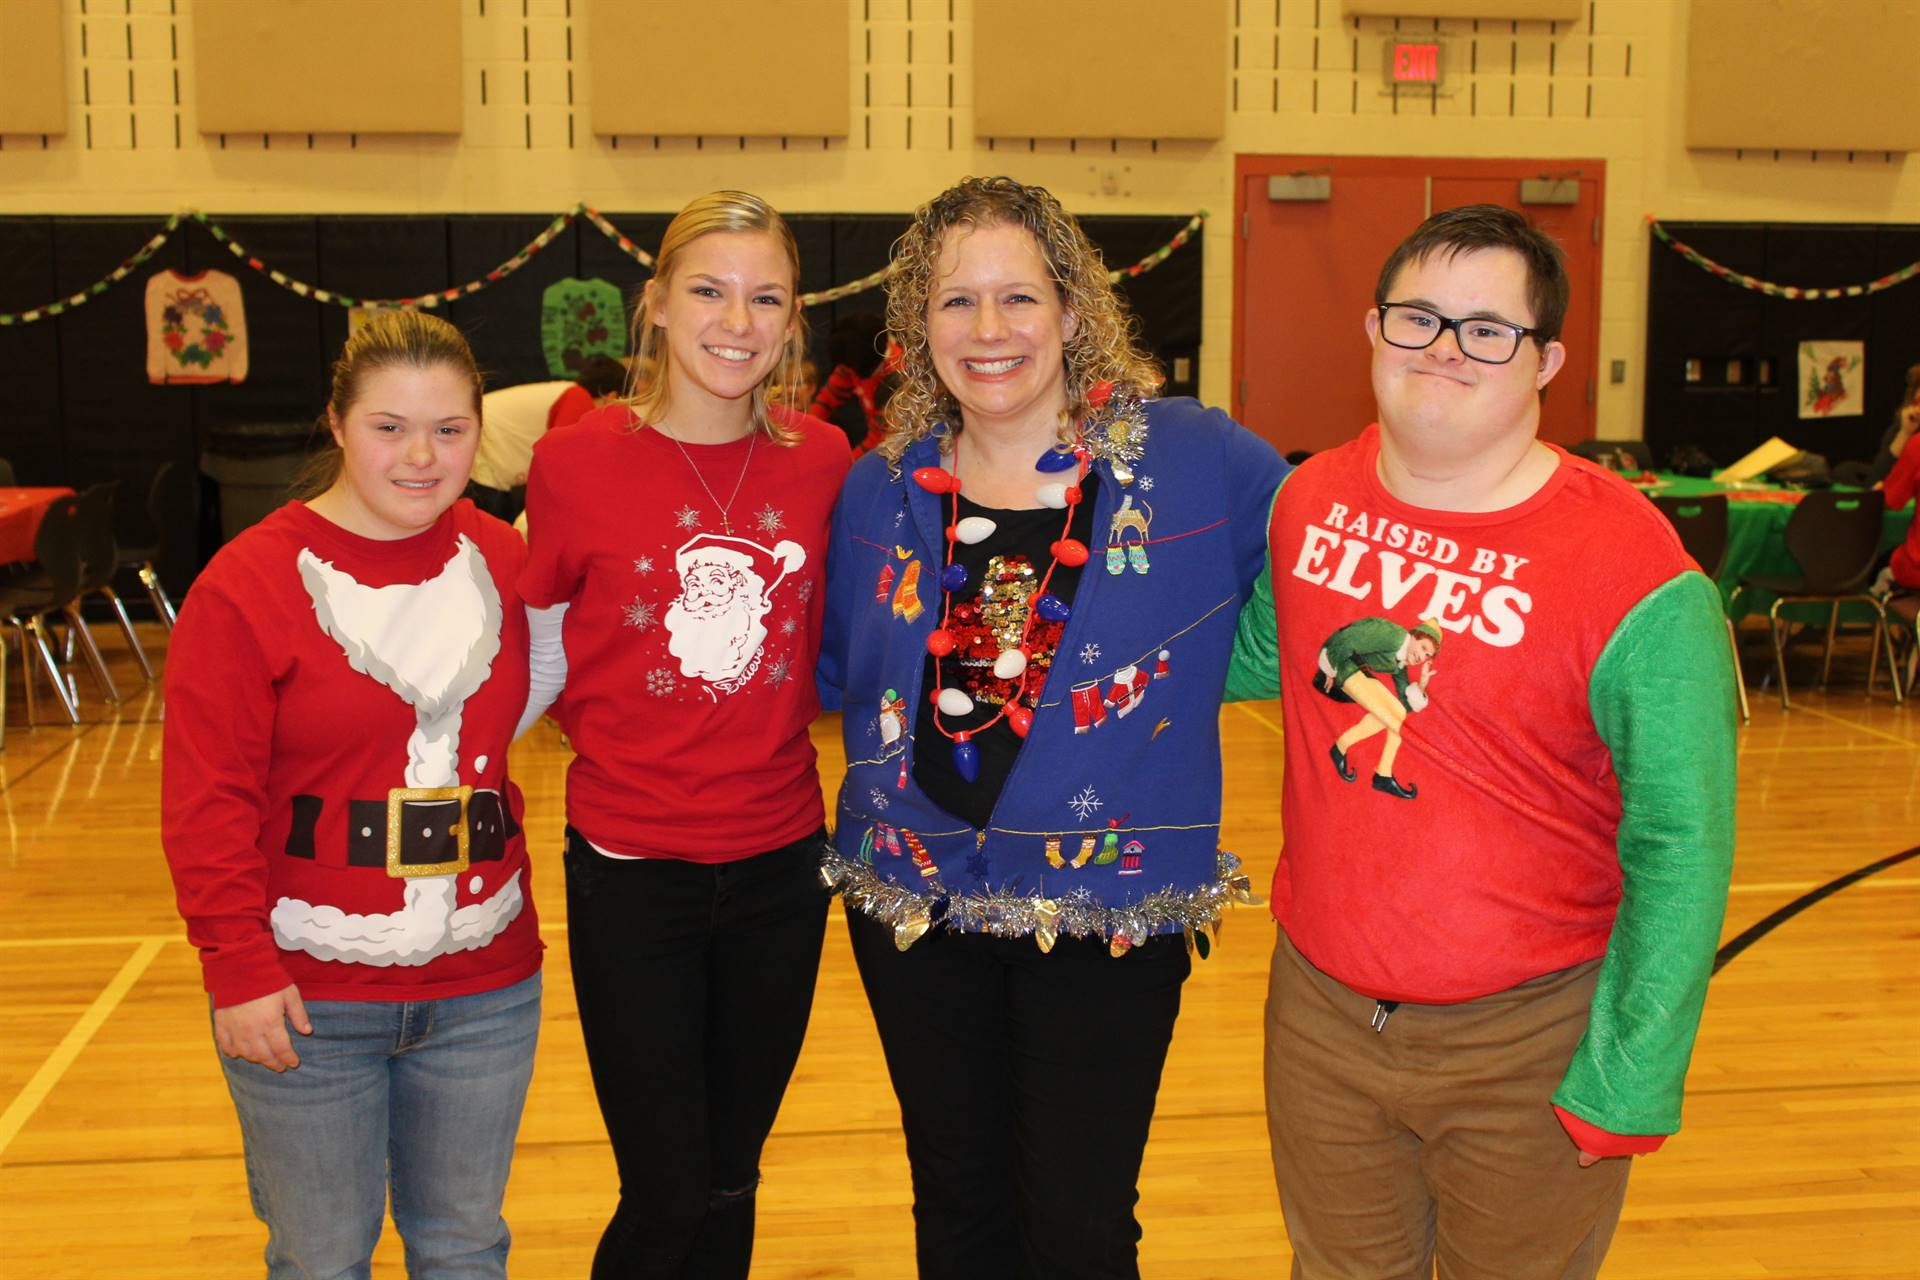 Students and Teachers at the Holiday Sweater Dance